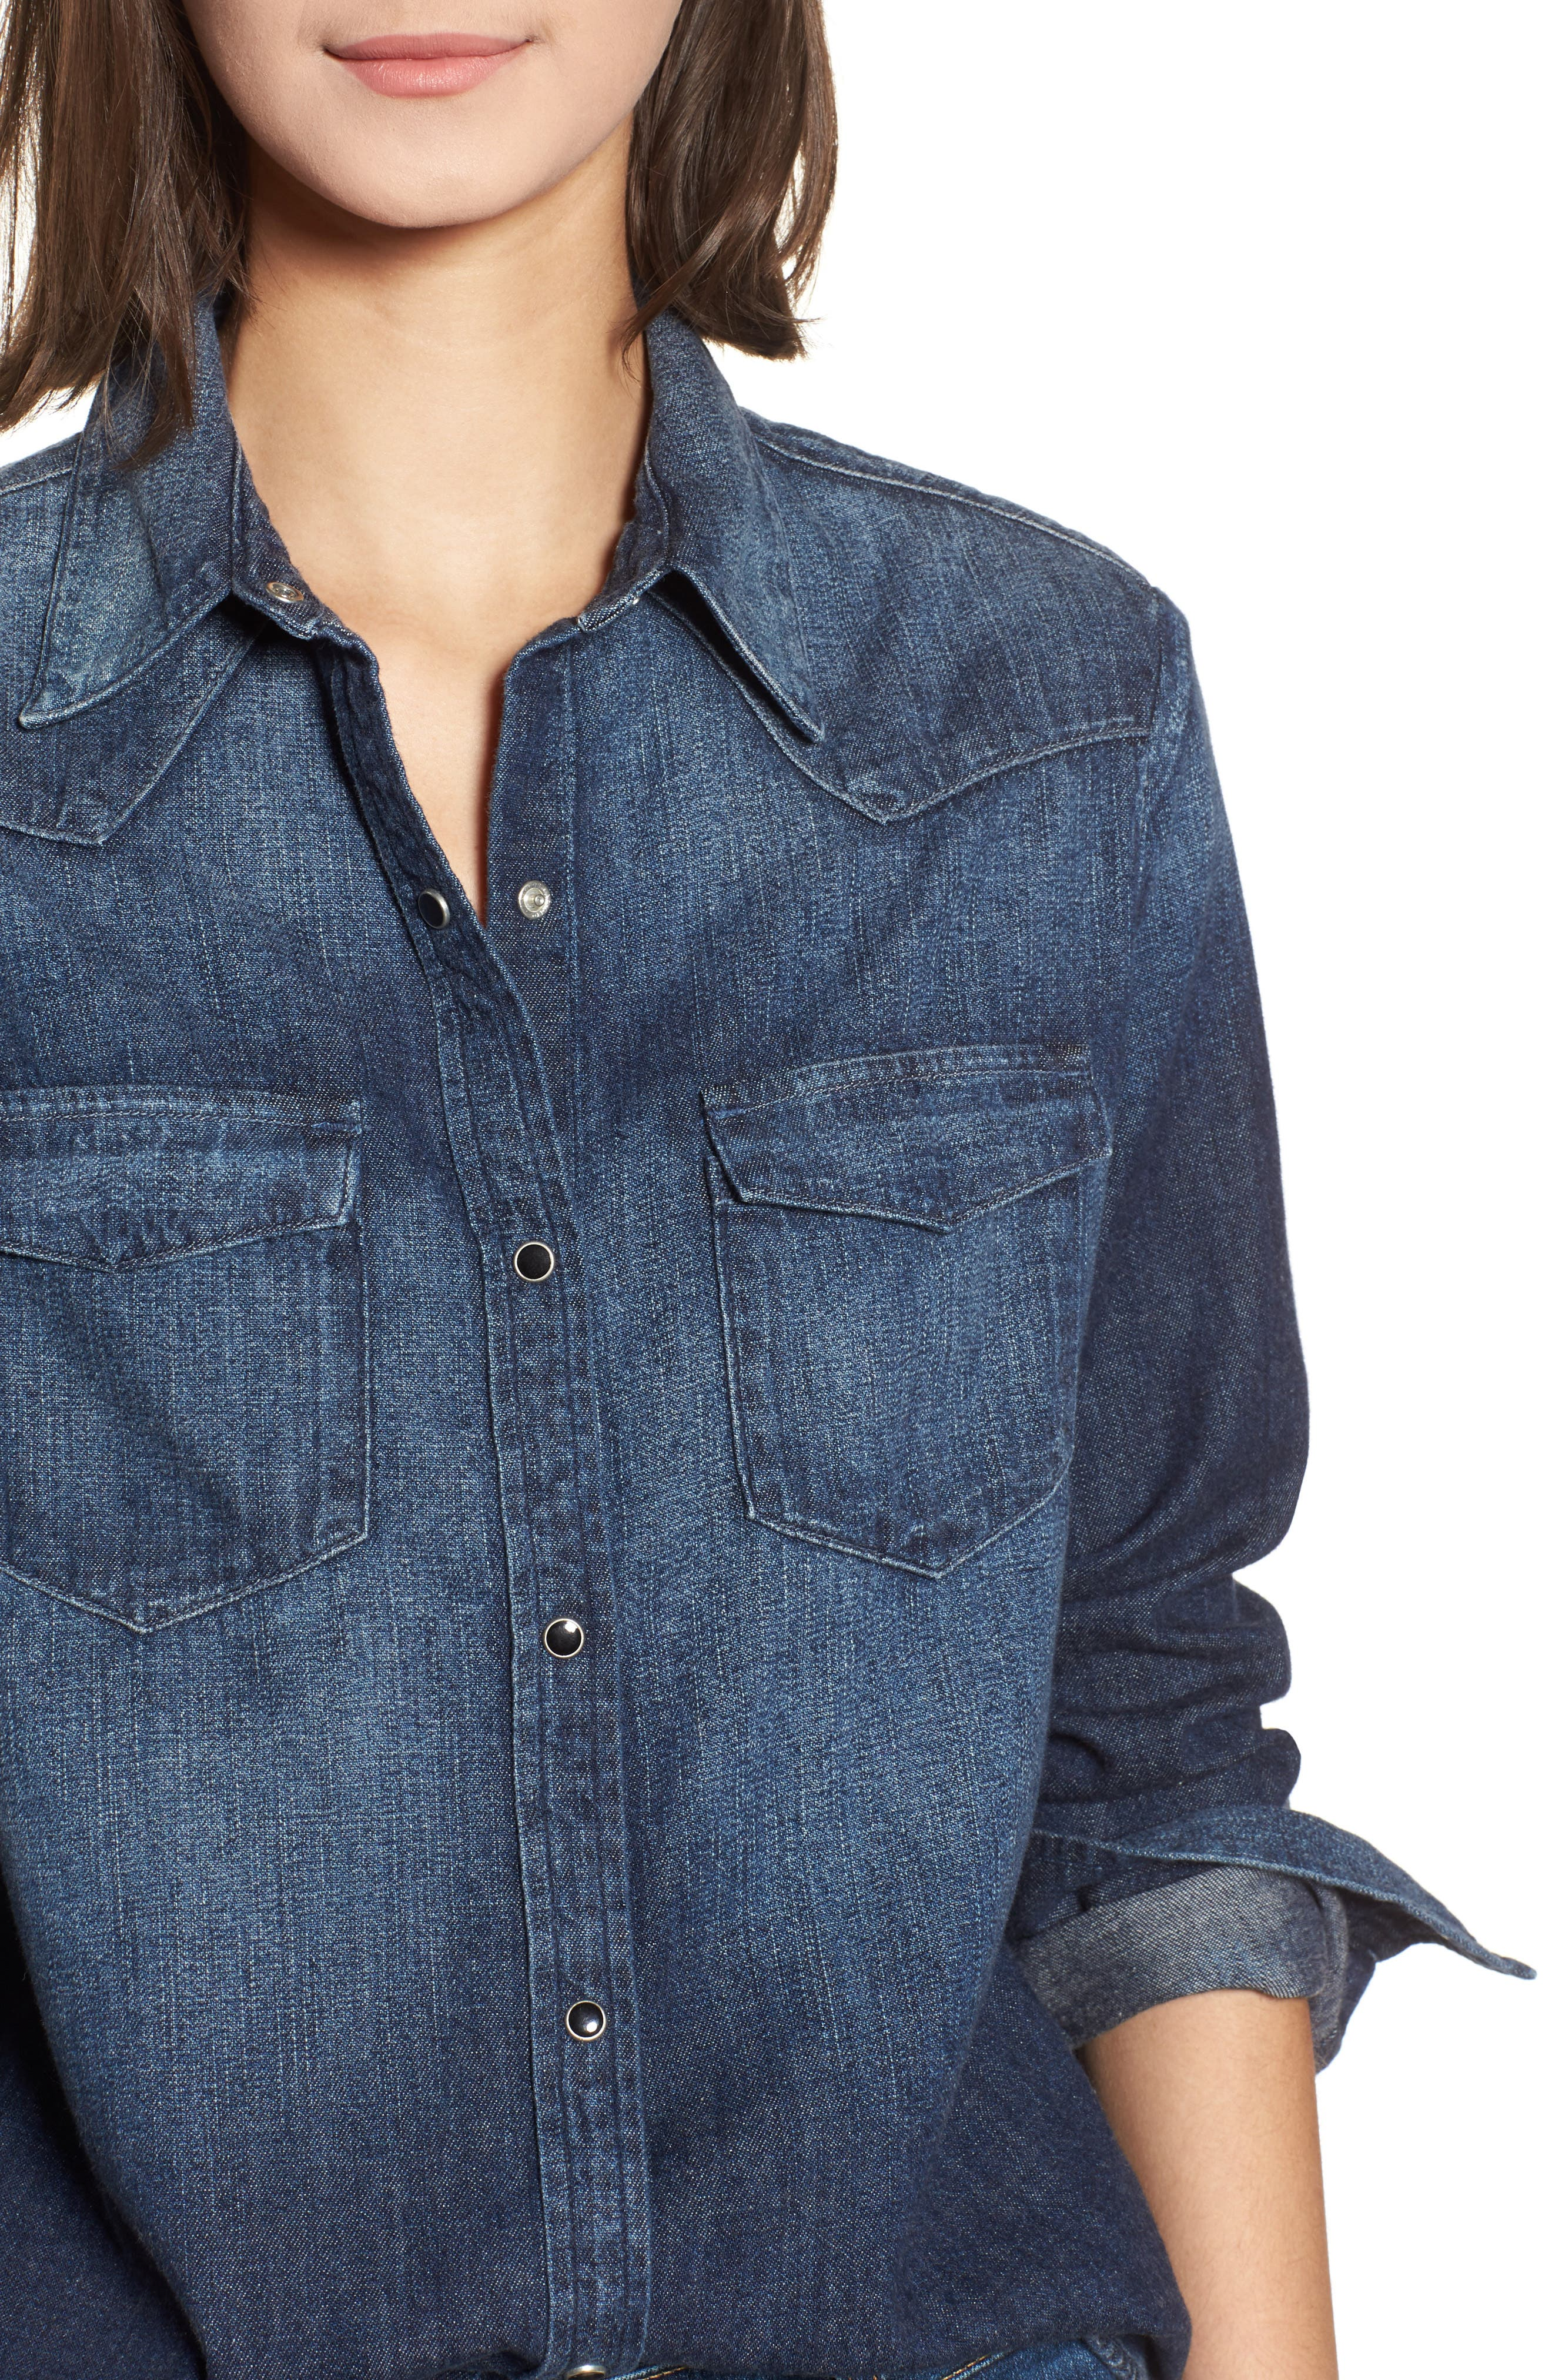 Deanna Denim Shirt,                             Alternate thumbnail 4, color,                             Timeless